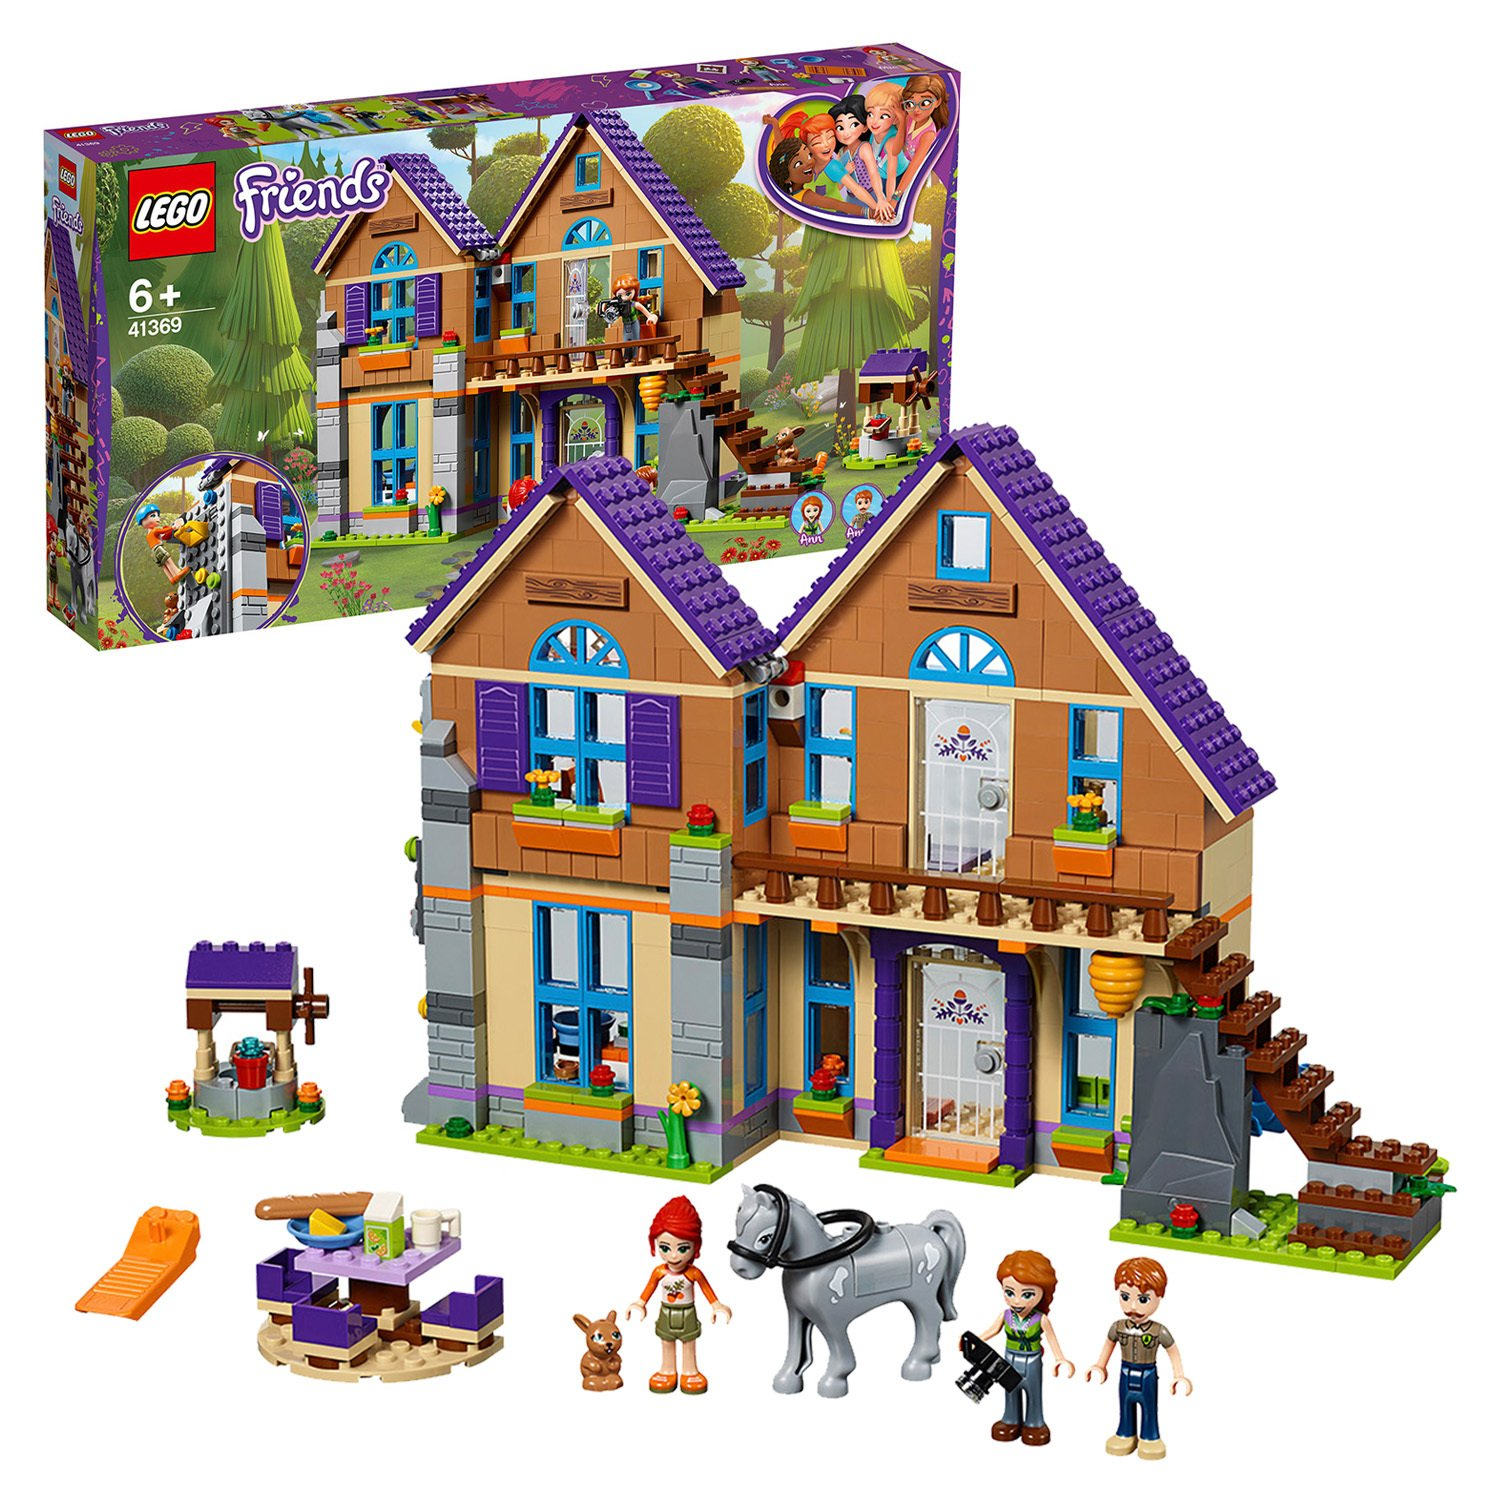 LEGO Friends Mia's Doll House Set - 41369